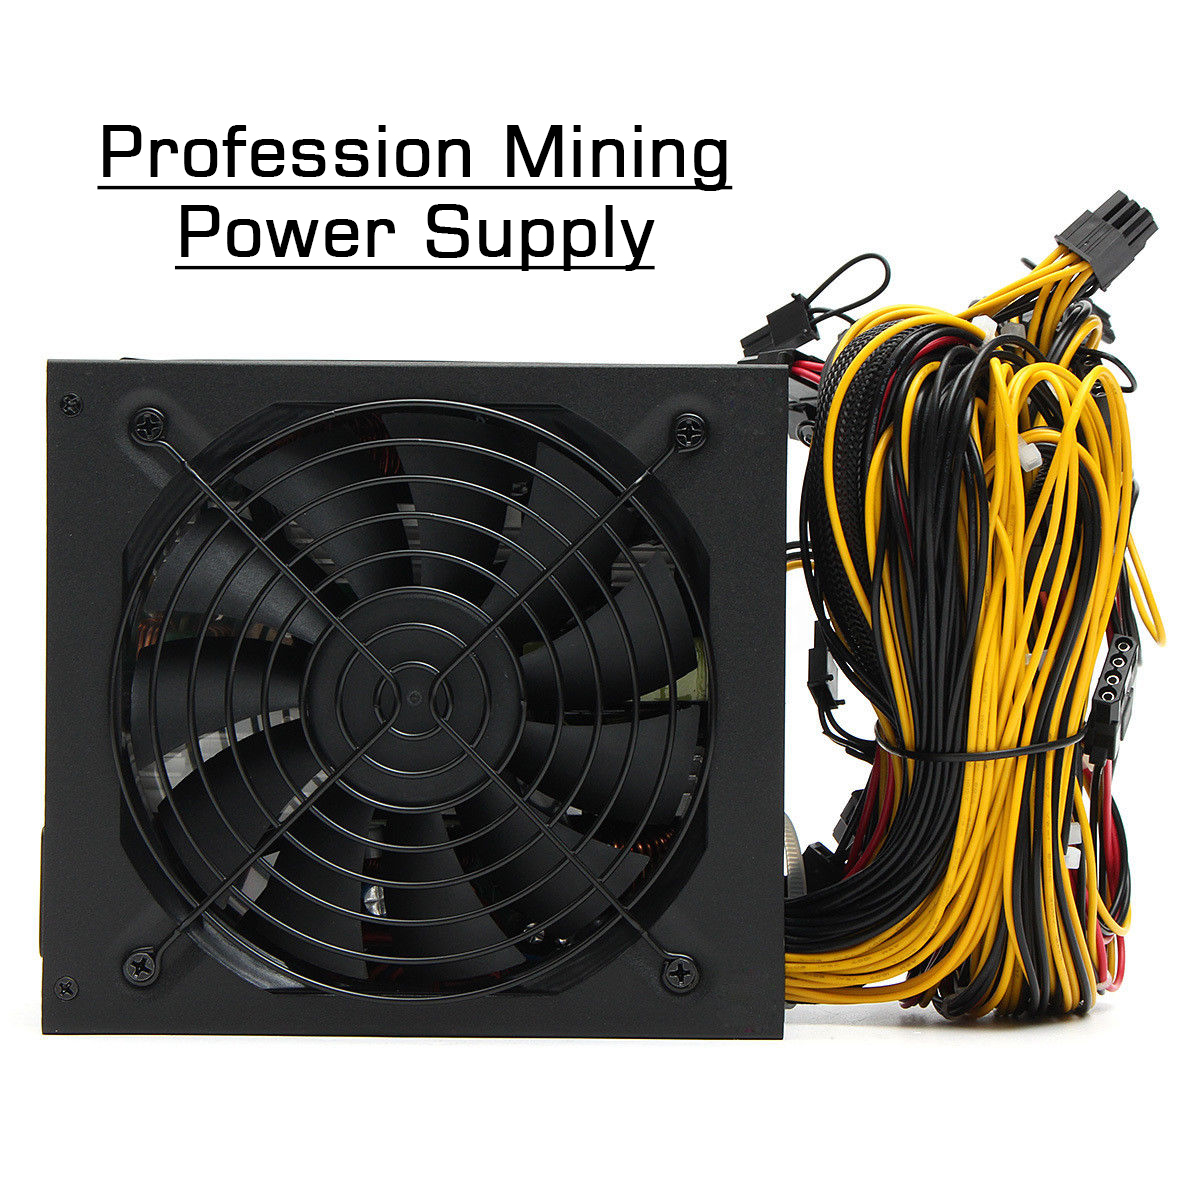 2000W ATX Gold Mining Power Supply SATA IDE 8 GPU for ETH BTC Ethereum